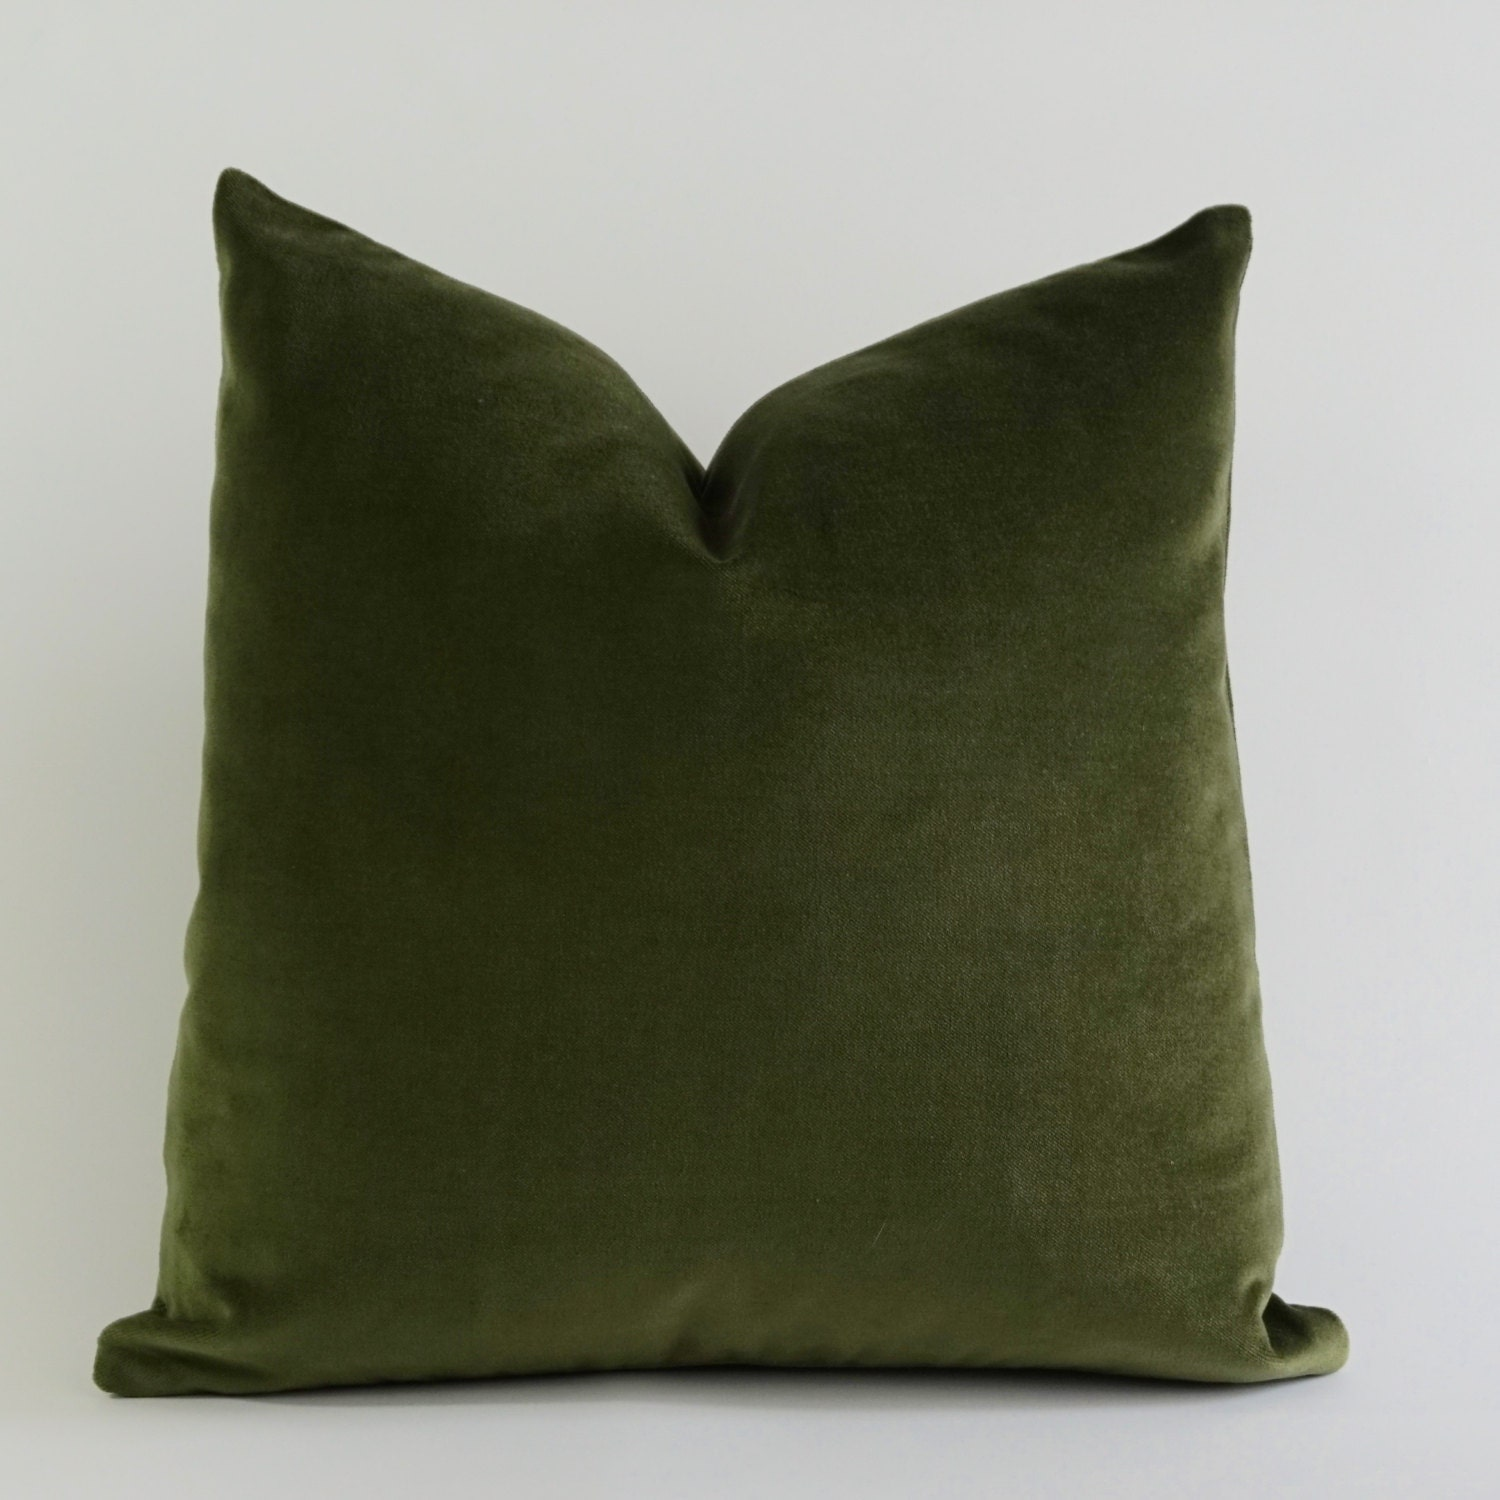 Velvet Decorative Pillow Covers : Olive Green Cotton Velvet Pillow Cover Decorative Accent